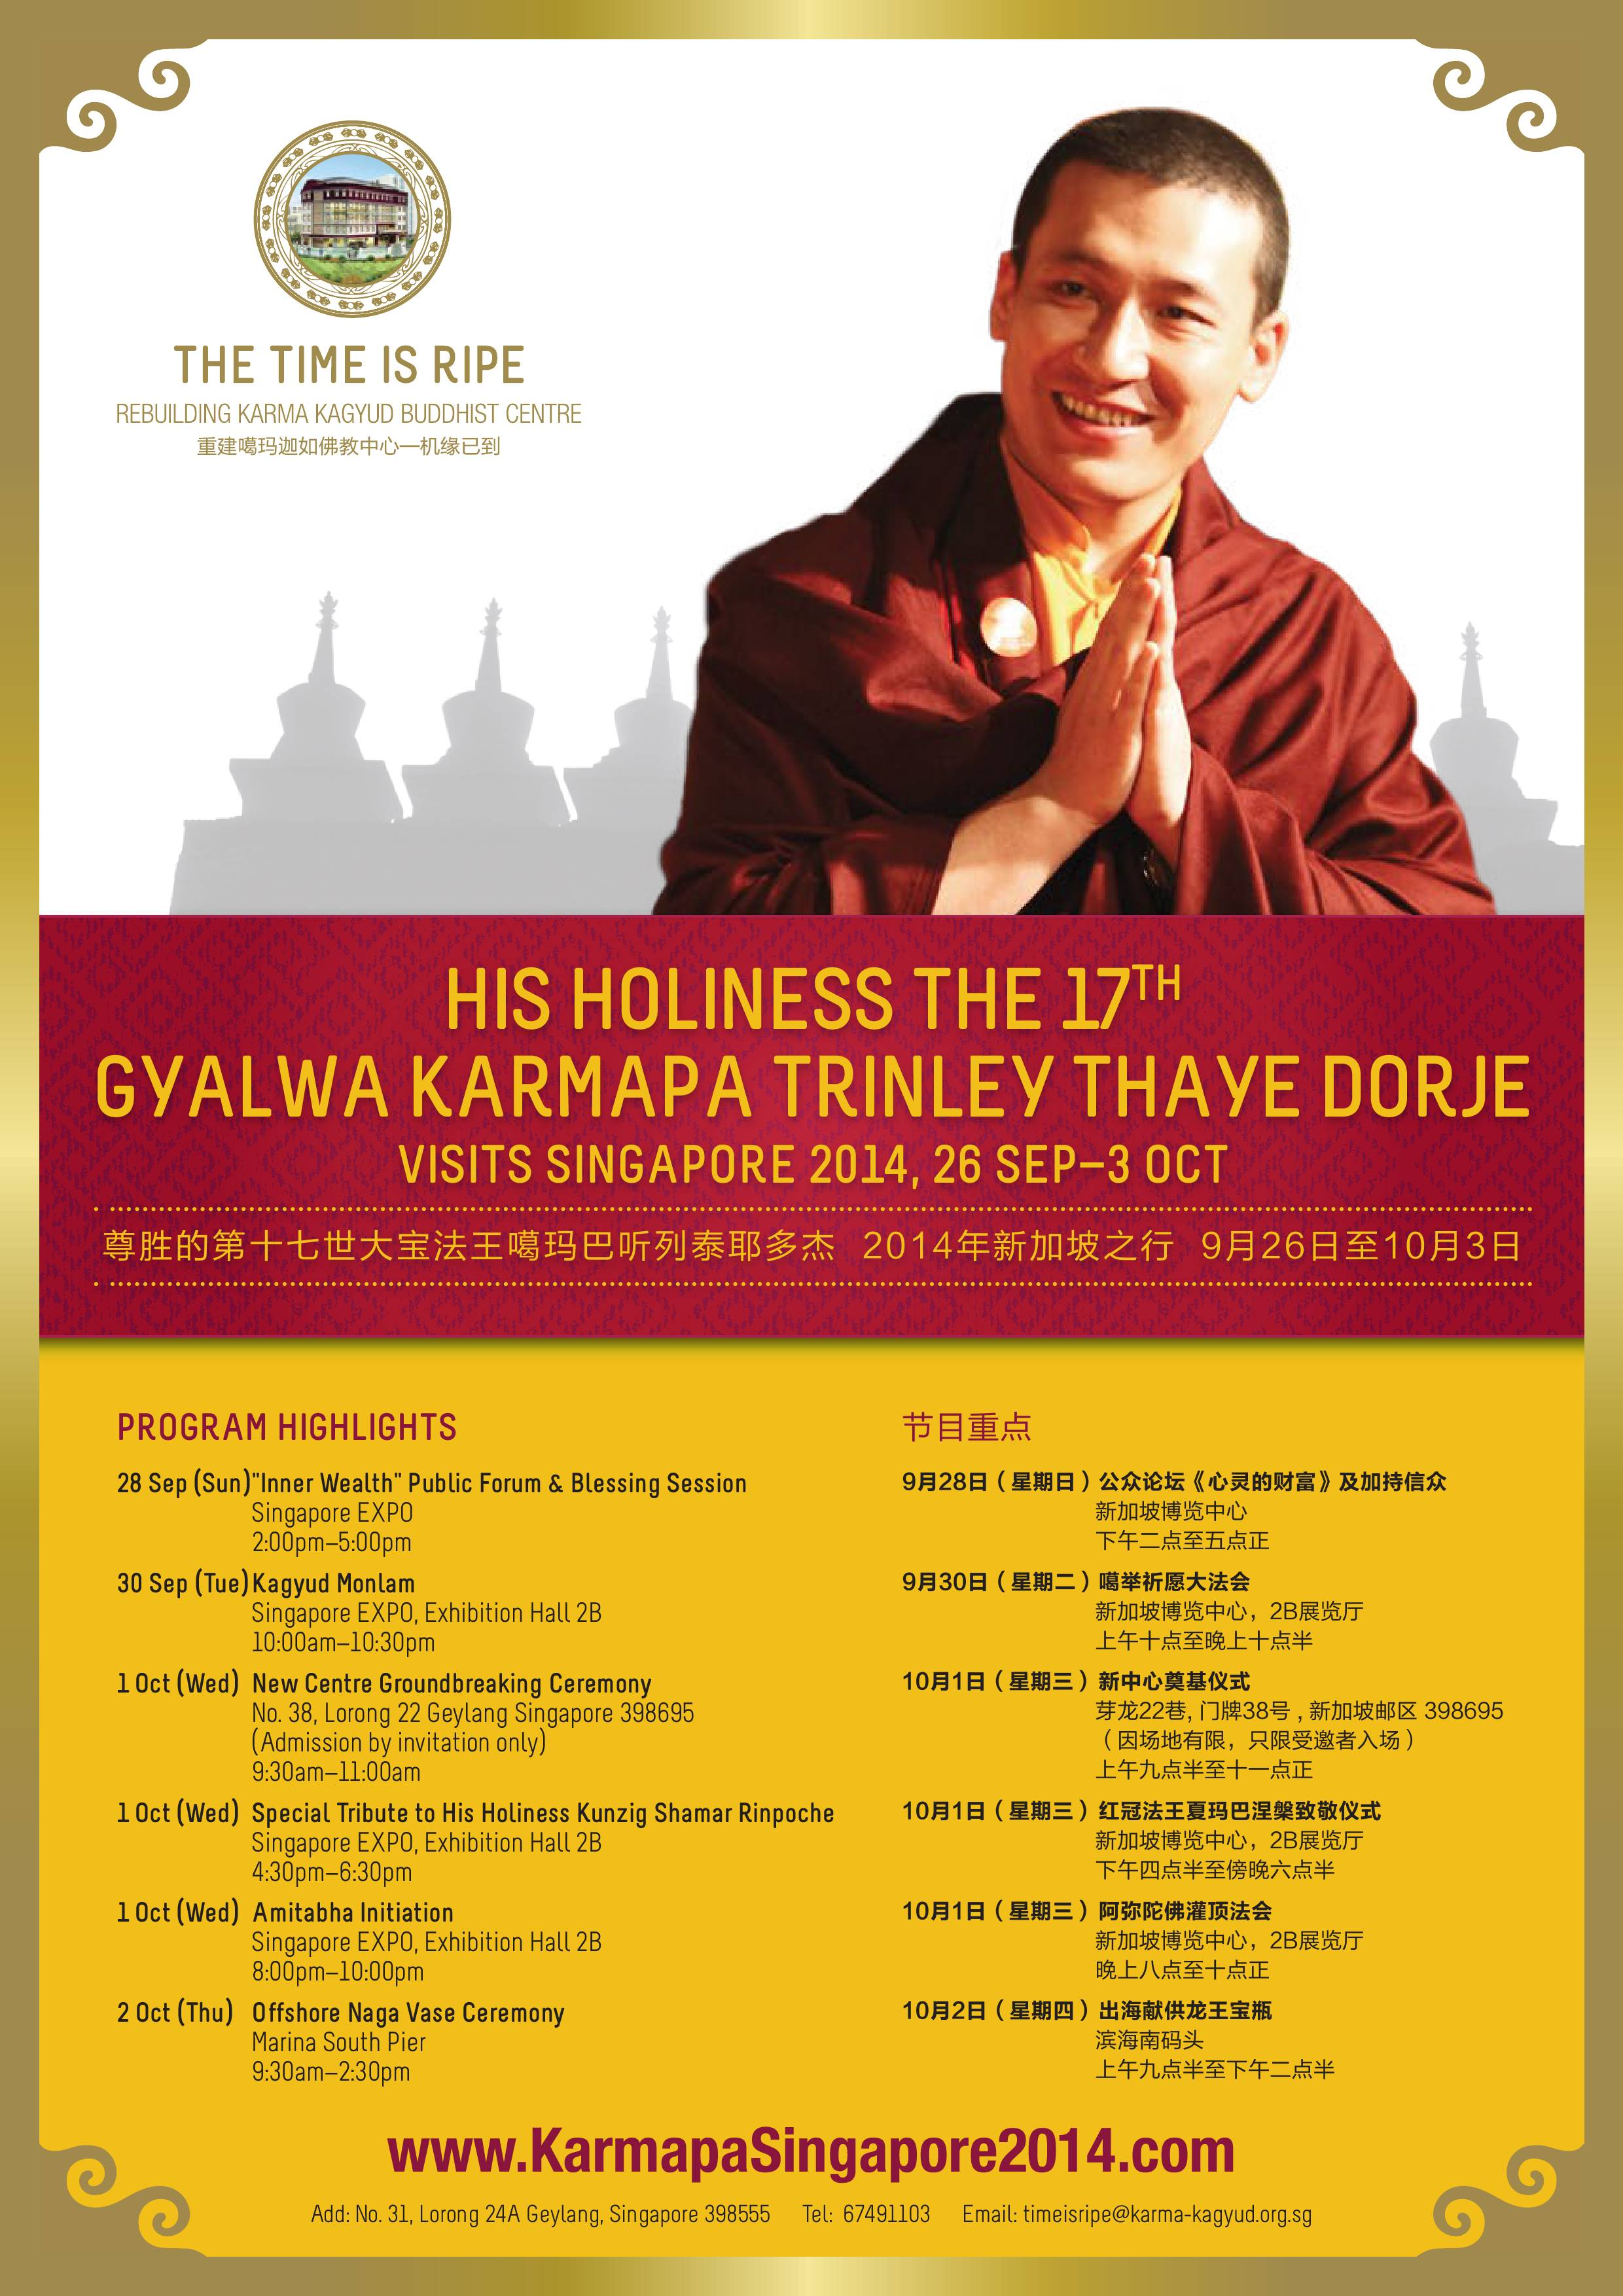 Karma kagyud buddhist centre his holiness the 17th gyalwa karmapa trinley thaye dorje visits singapore 2014 26 sep 3 oct thecheapjerseys Image collections